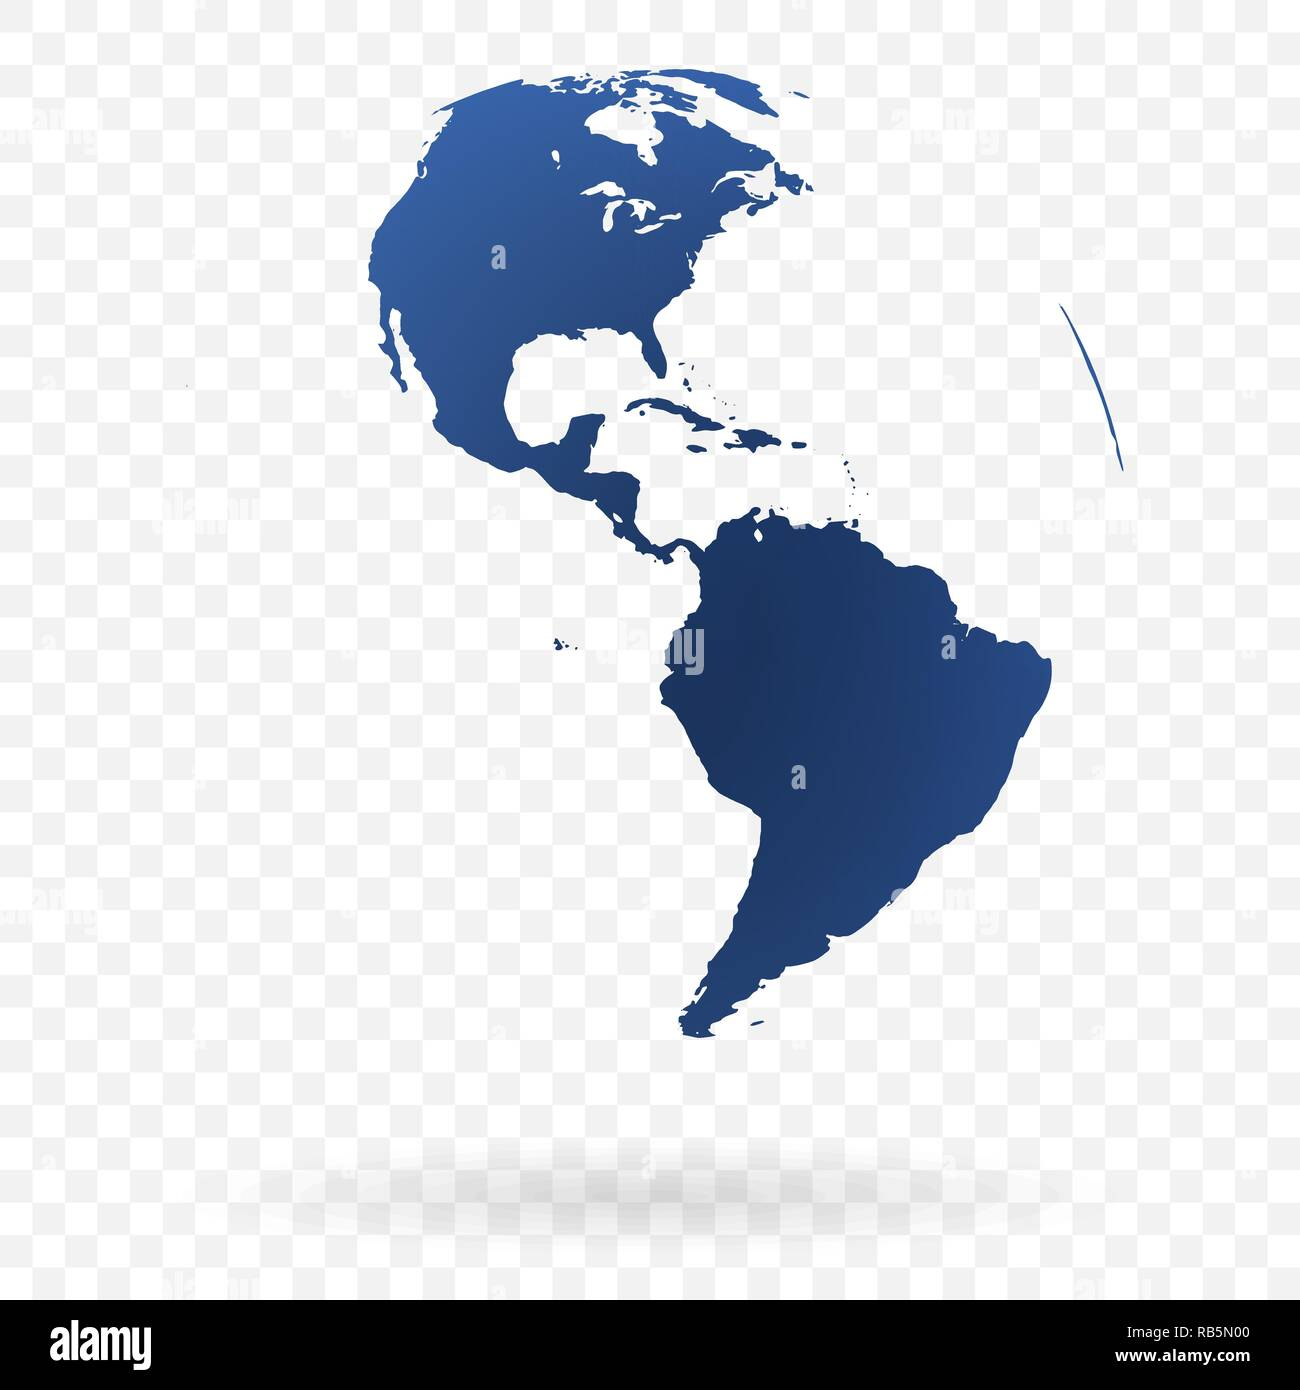 Highly detailed Earth globe symbol, North and South America